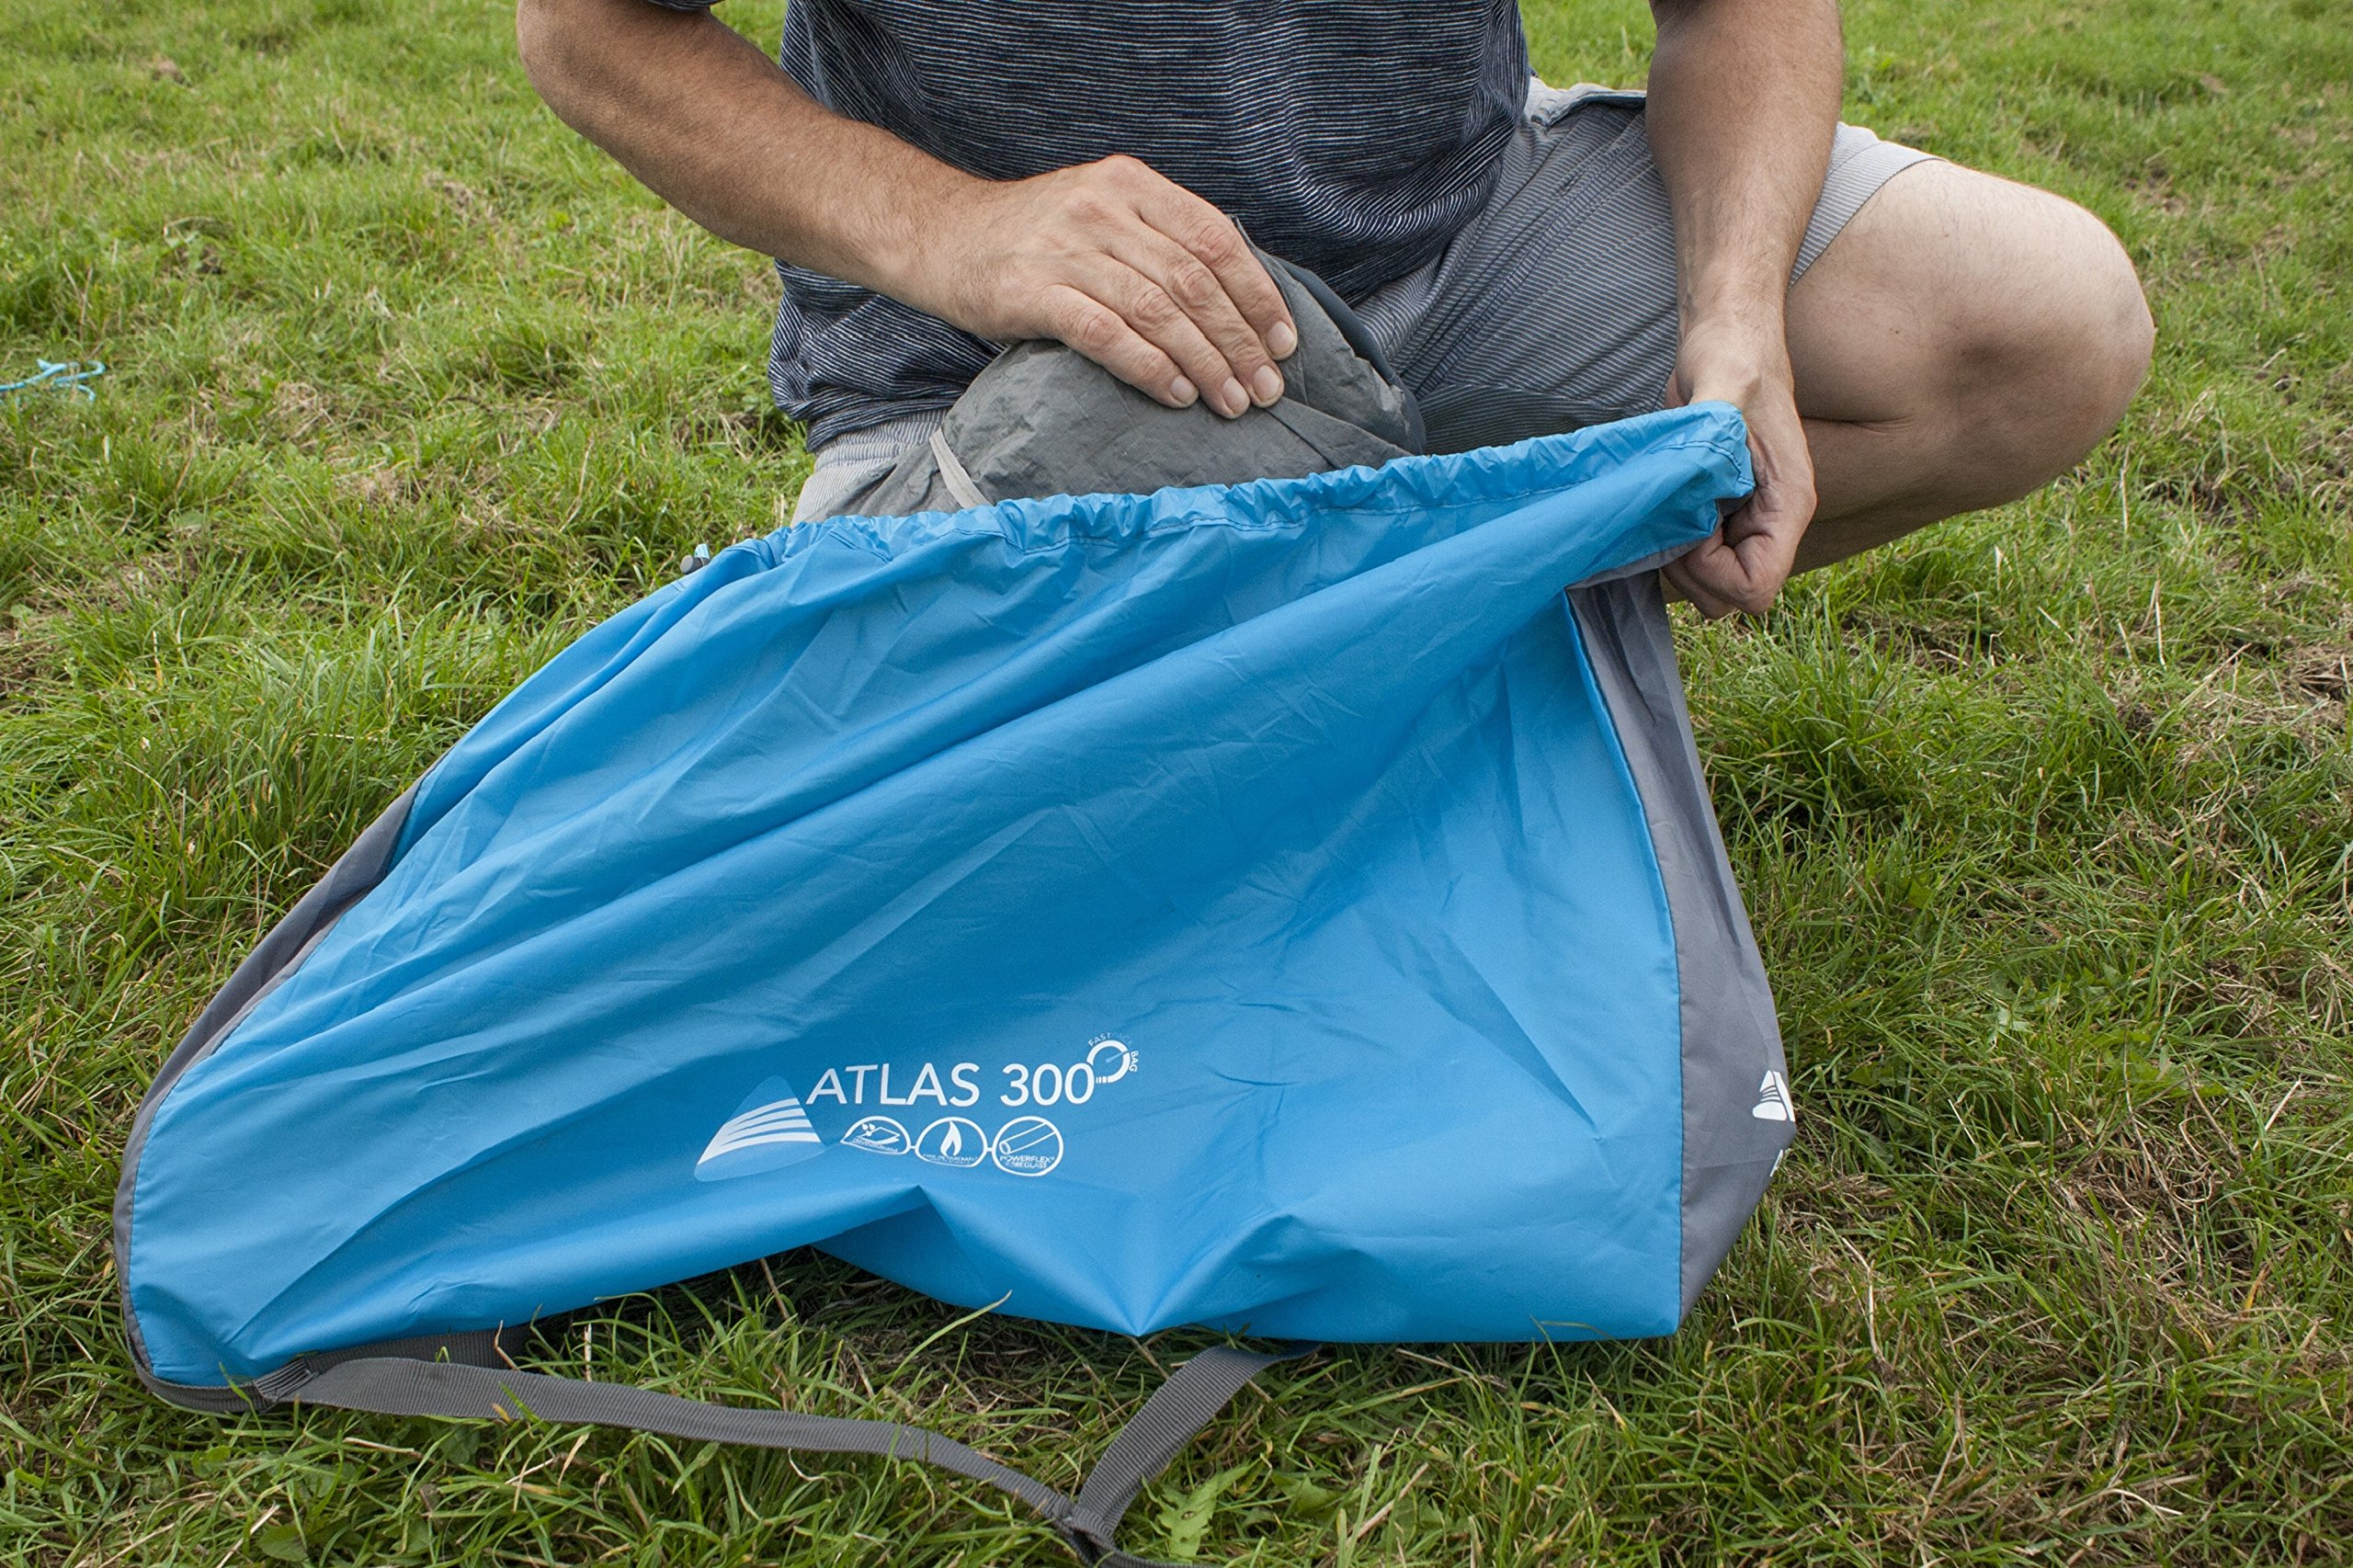 Vango Waterproof Atlas 300 Unisex Outdoor Dome Tent 3